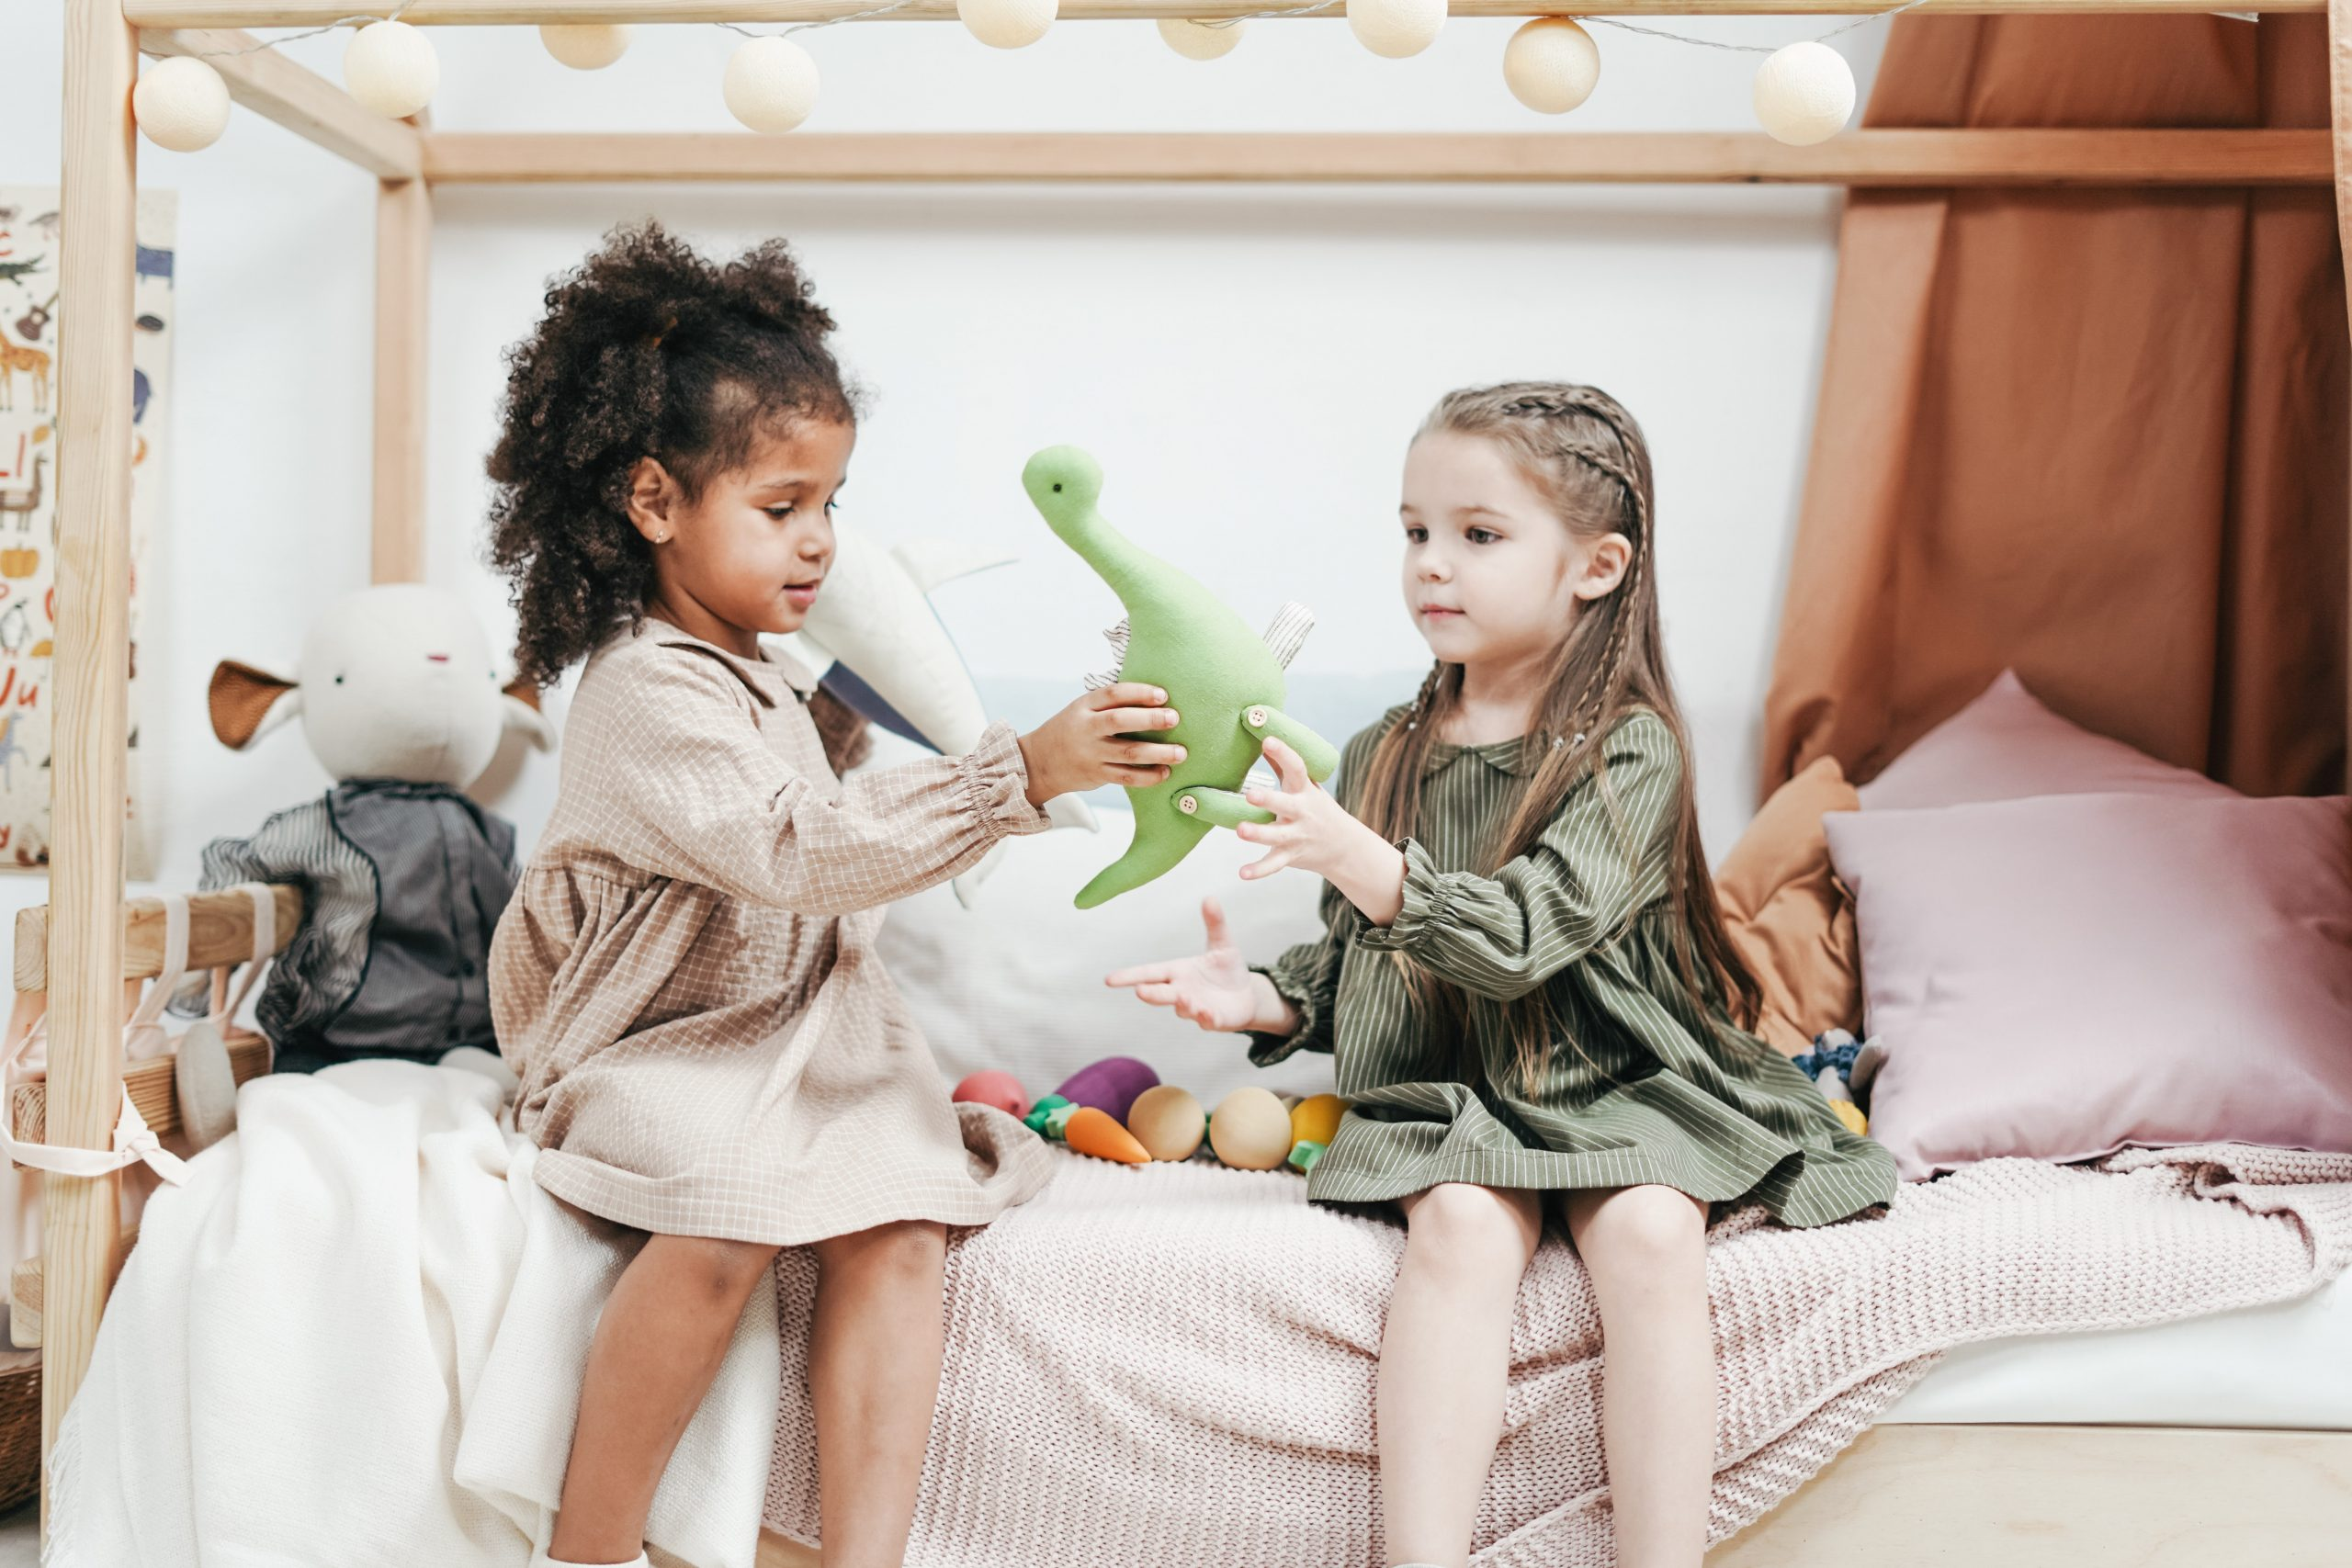 two little girls playing with a stuffed dinosaur